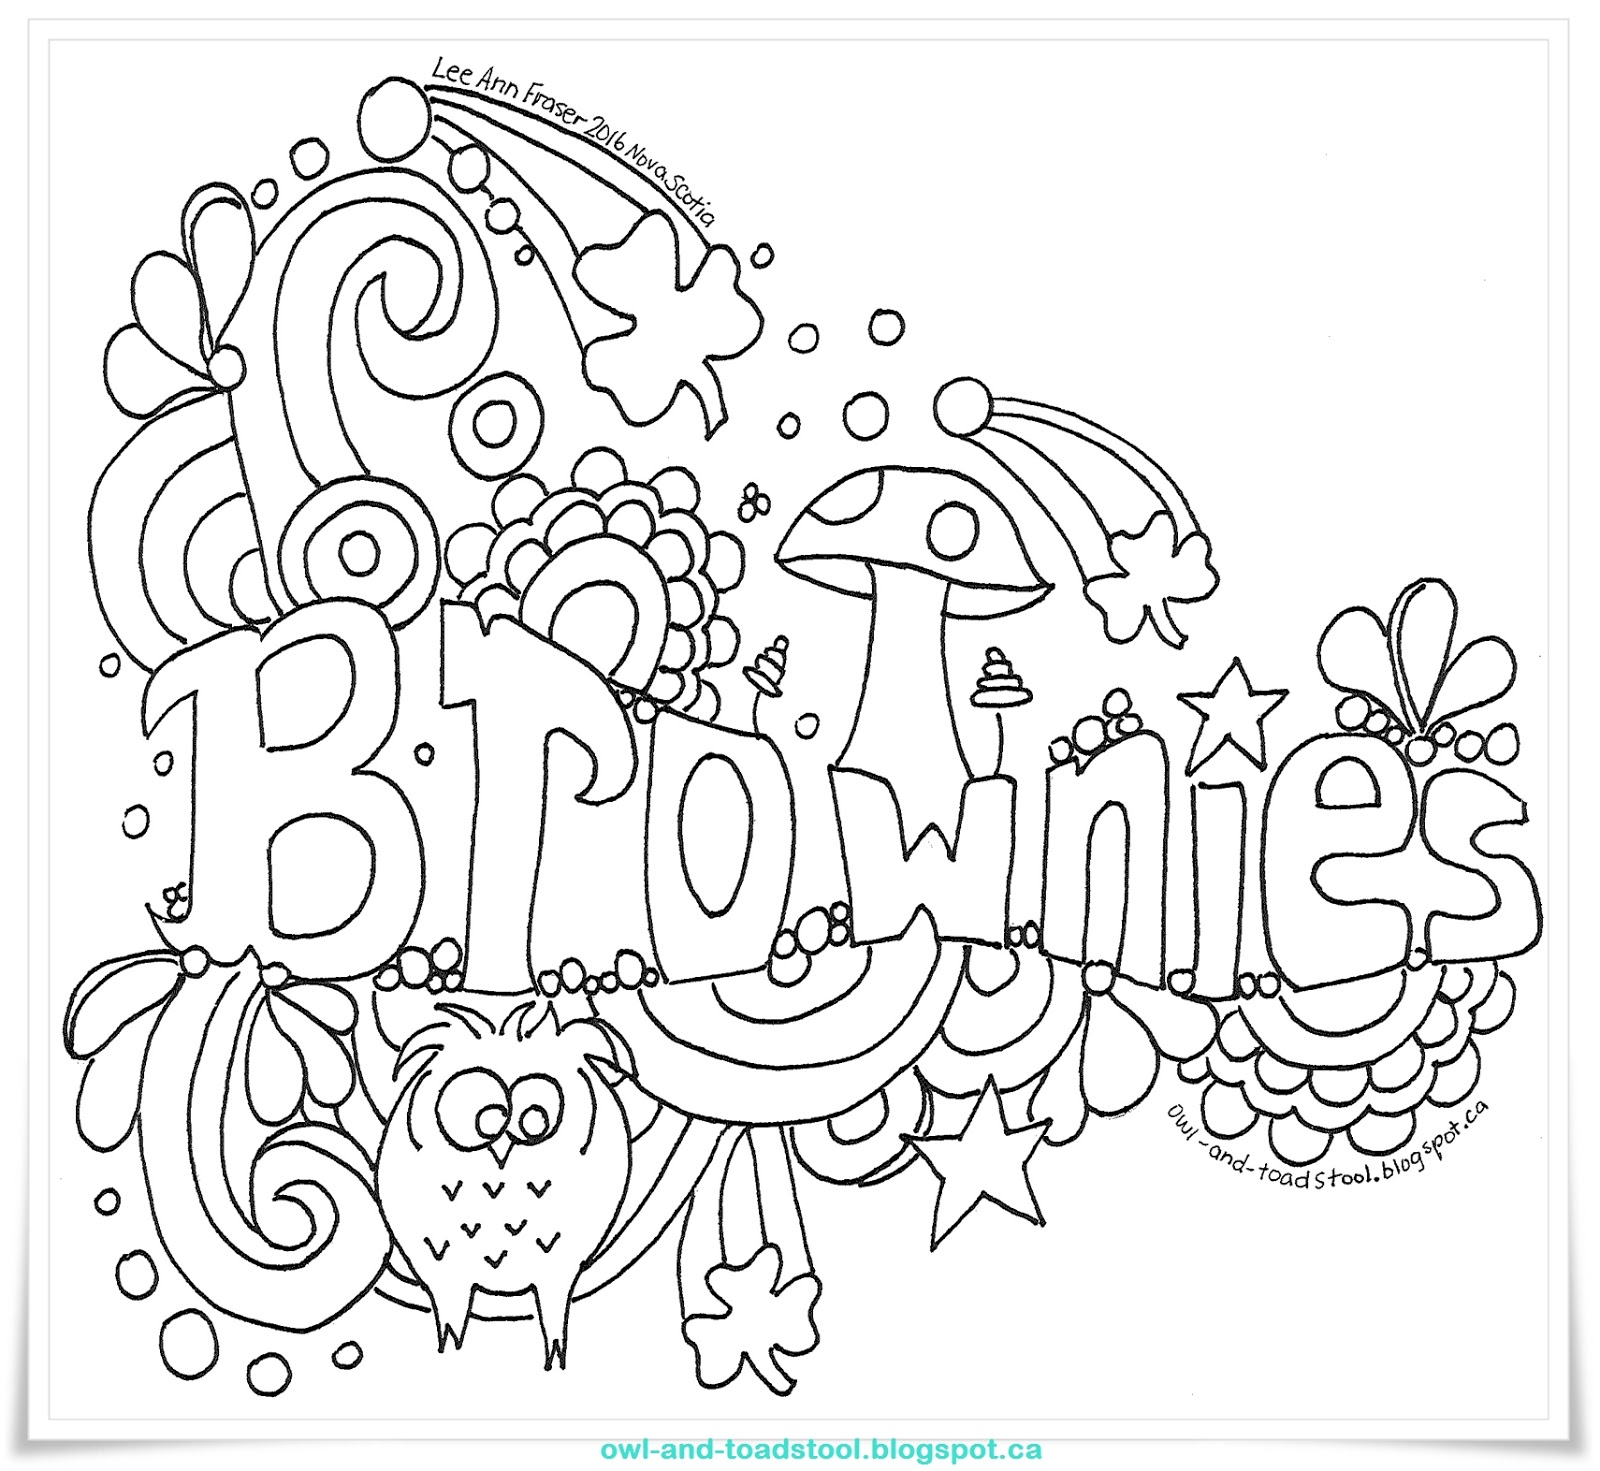 girl scout coloring pages pdf   Owl & Toadstool: Doodle- Brownies